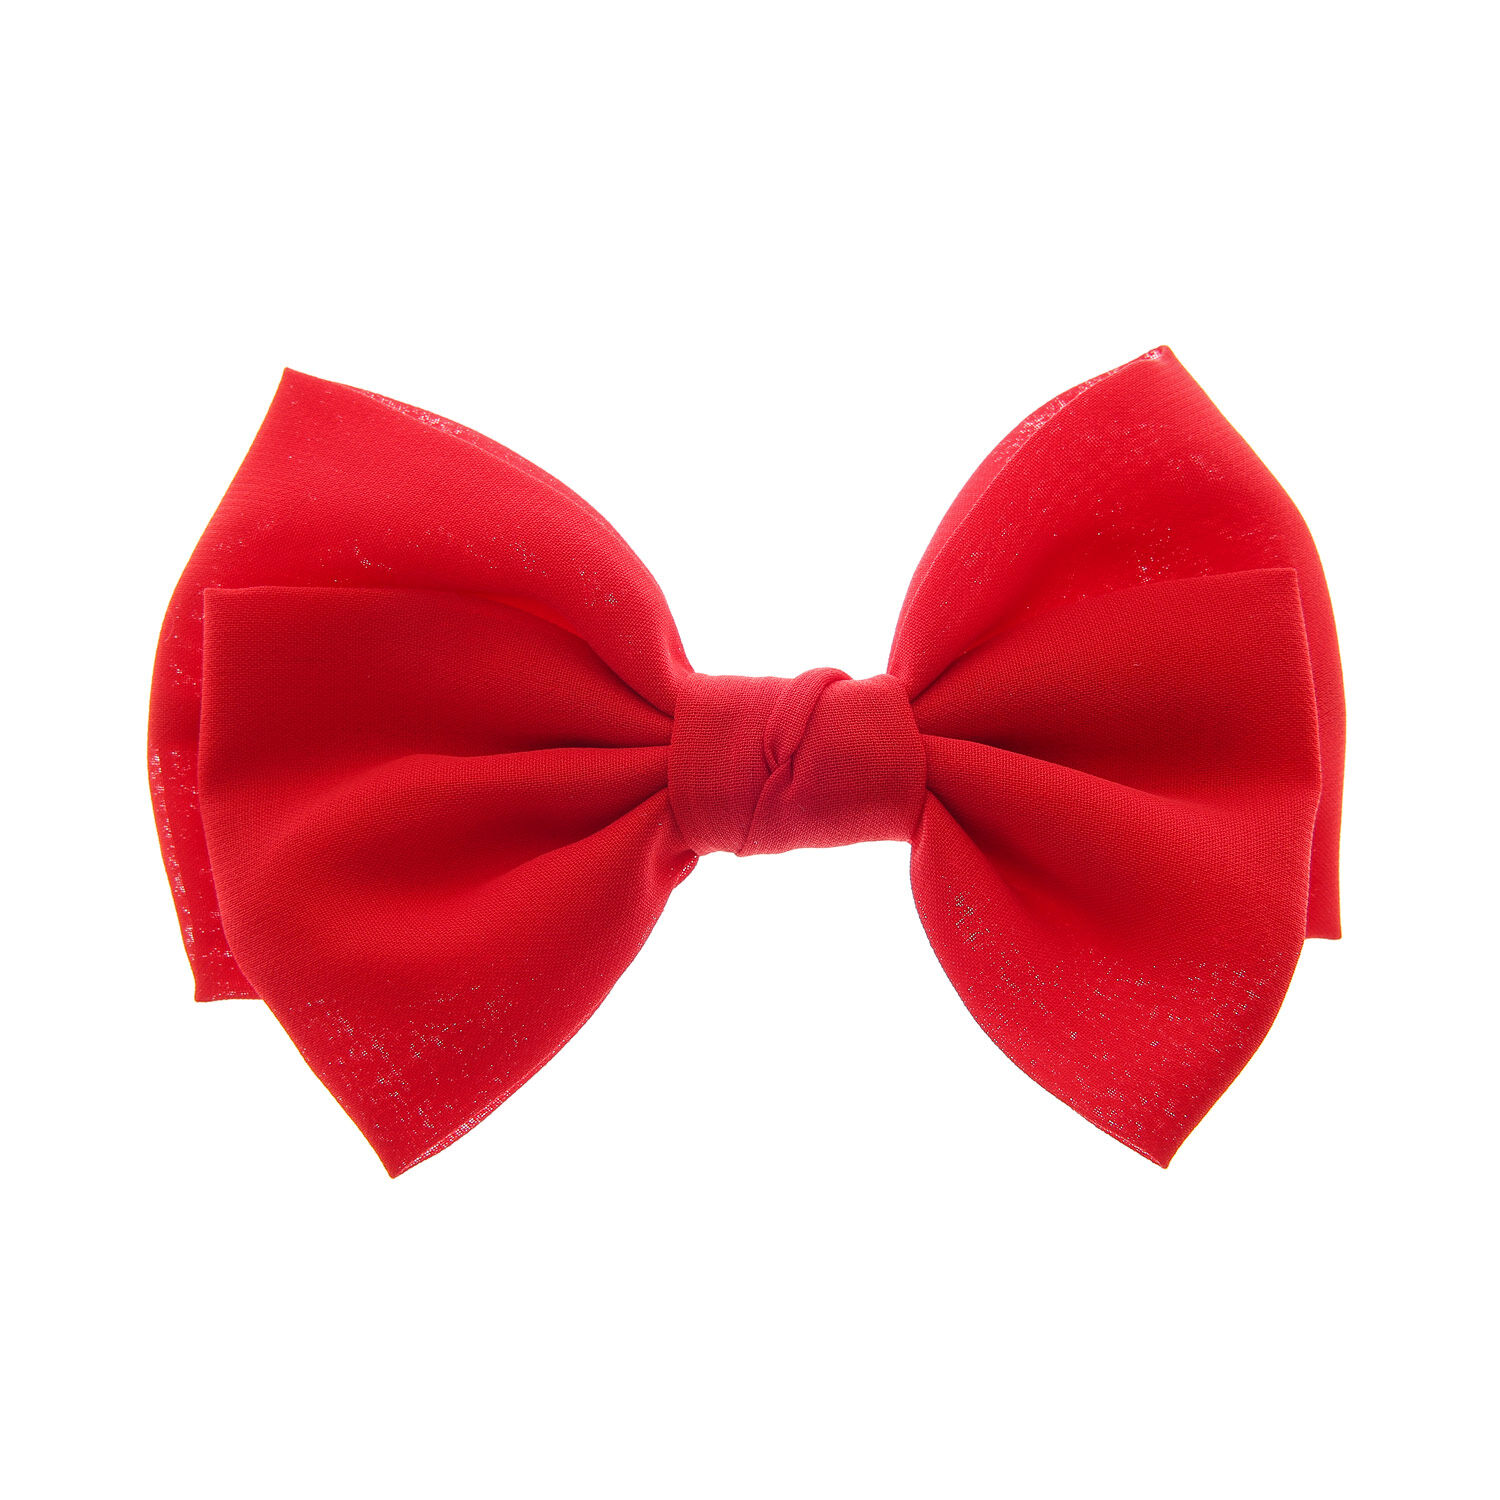 large floppy hair bow clip - red